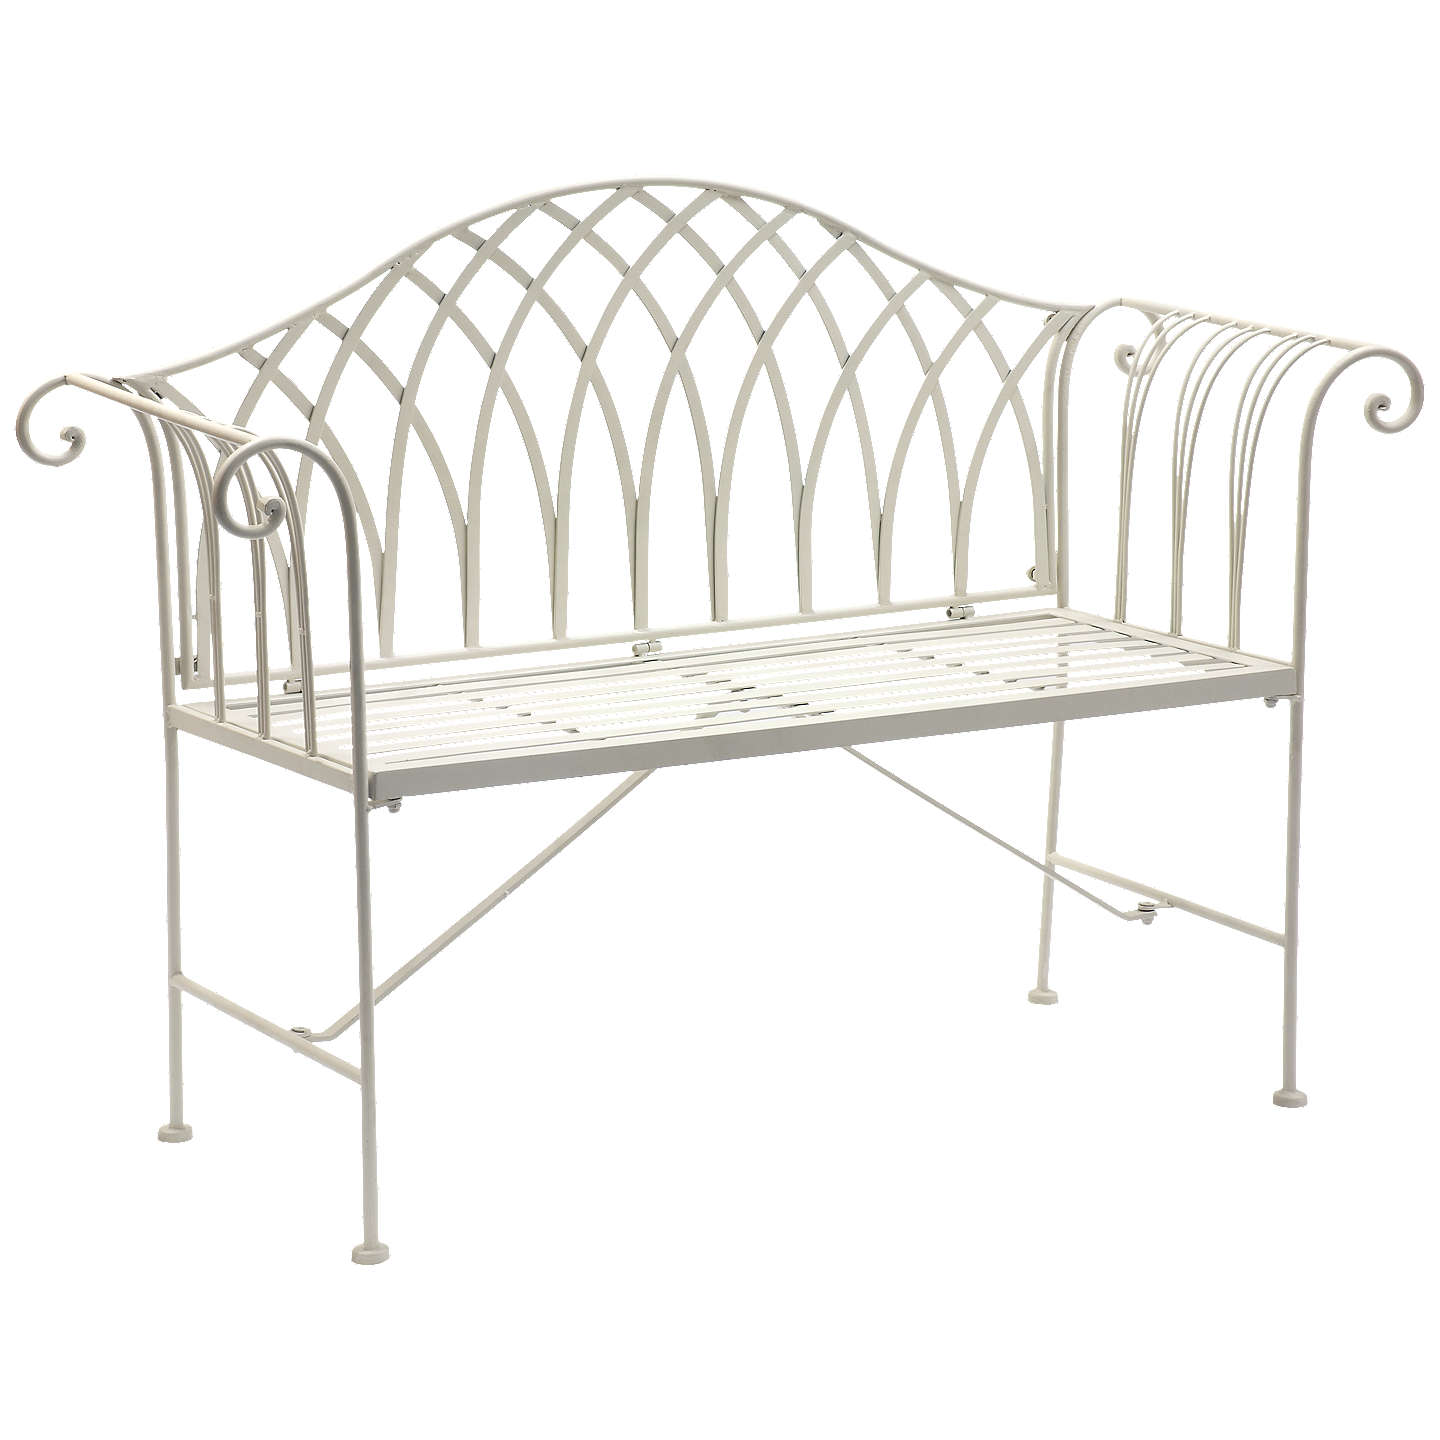 regency garden white rose iron productdisplay painted bench wrought uniacke